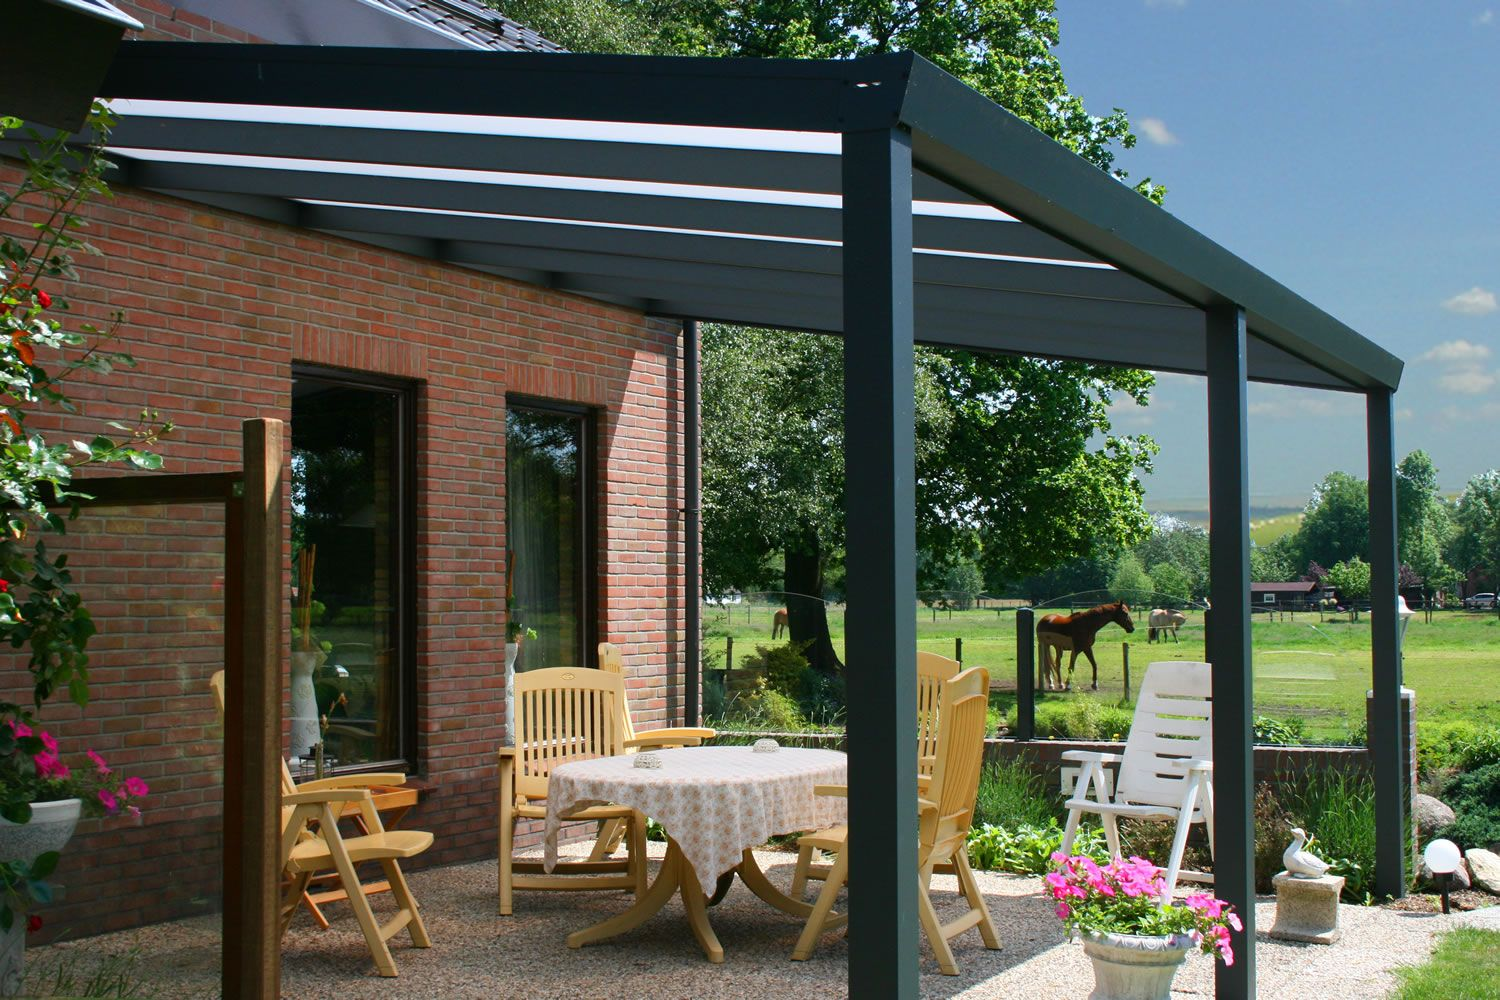 A Canopy or Veranda For Your Garden | Garden canopy, Verandas and Canopy